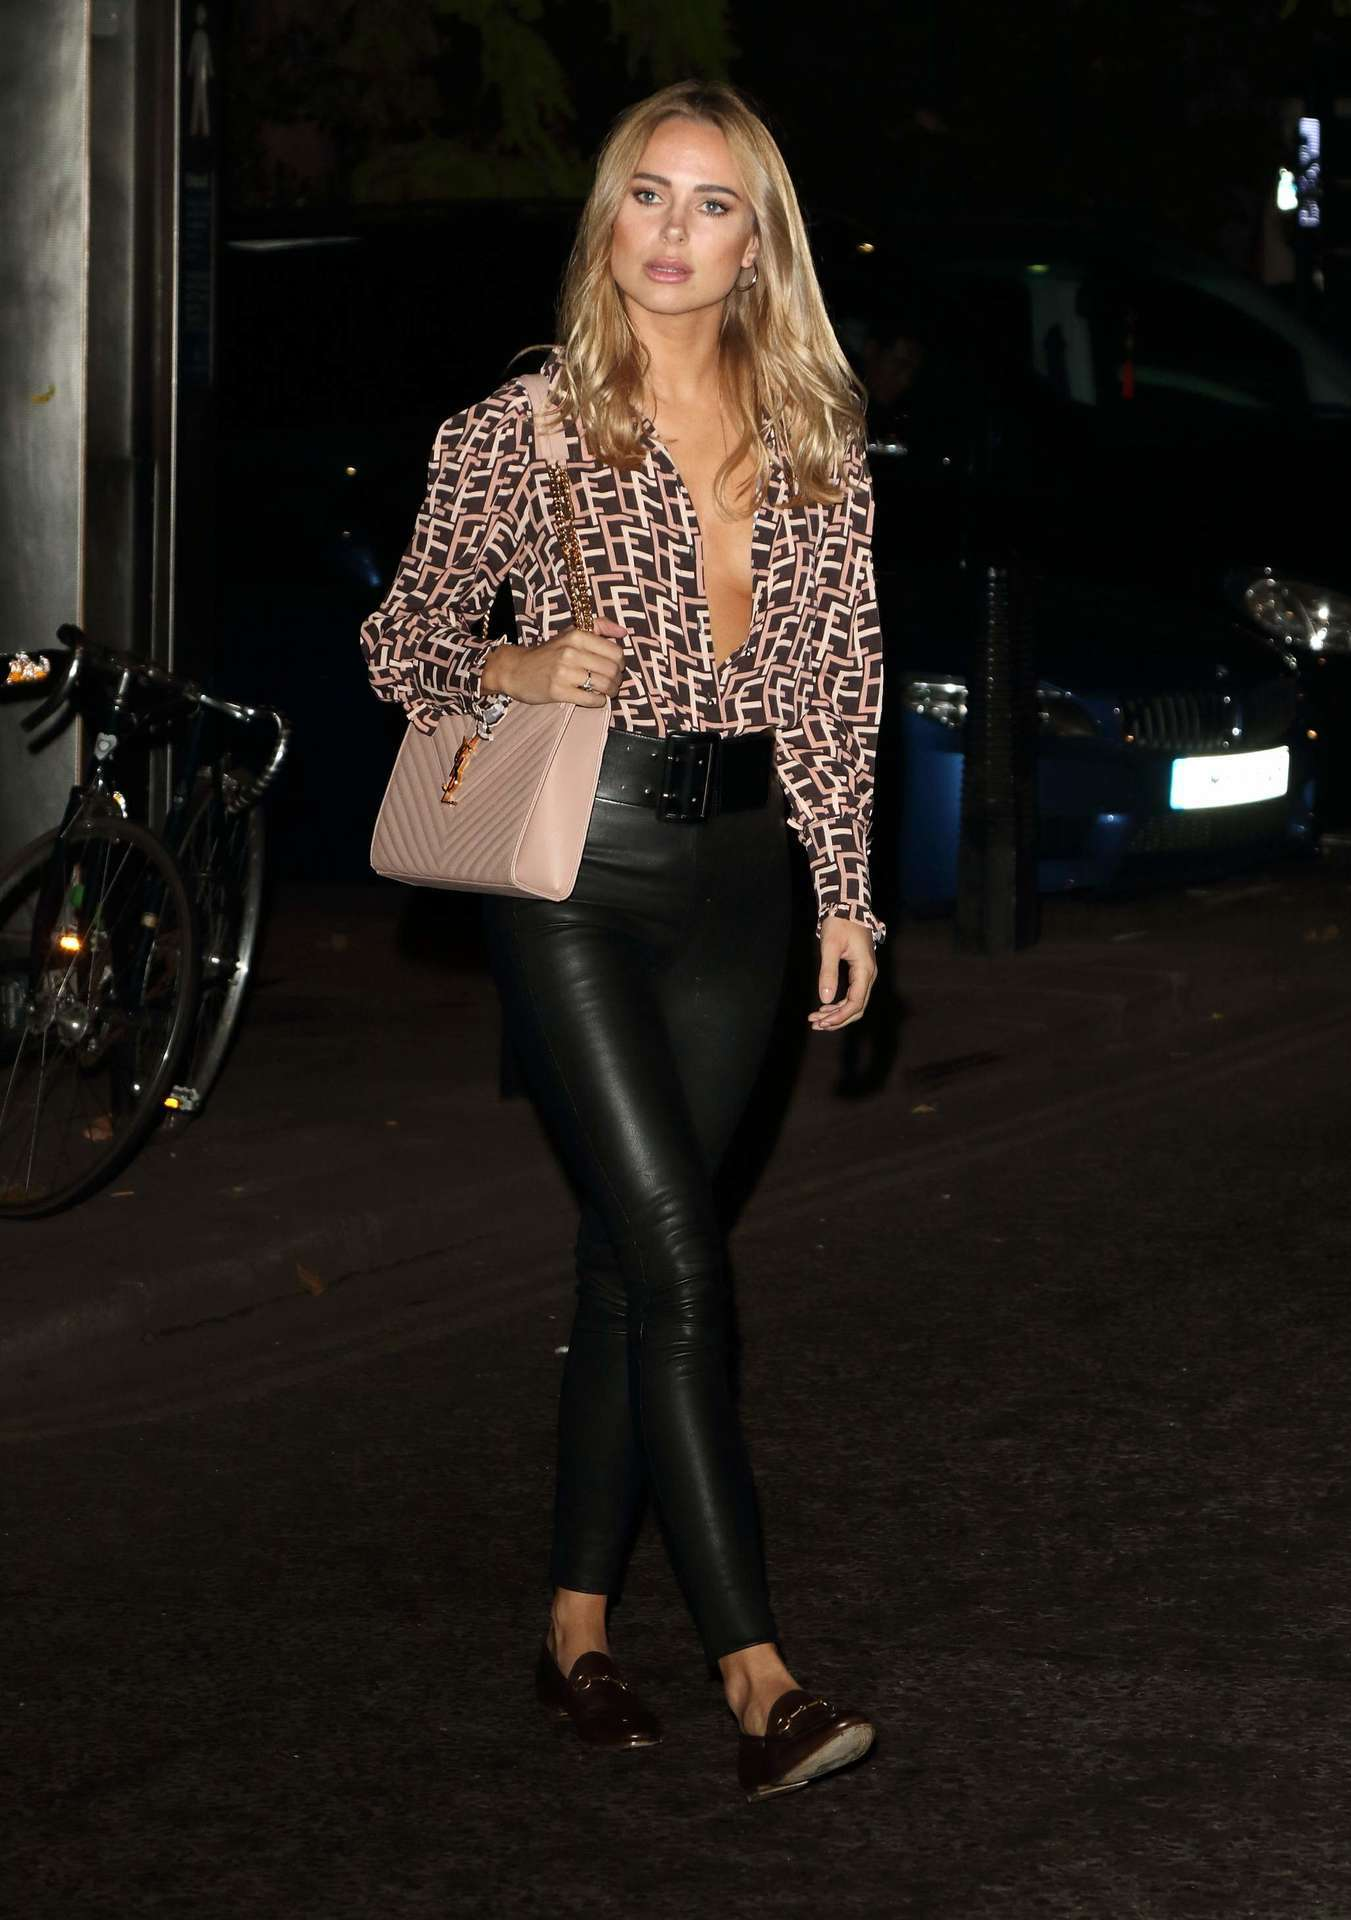 Kimberley Garner at Portr8's Three Mobiles VIP Gallery Launch in London